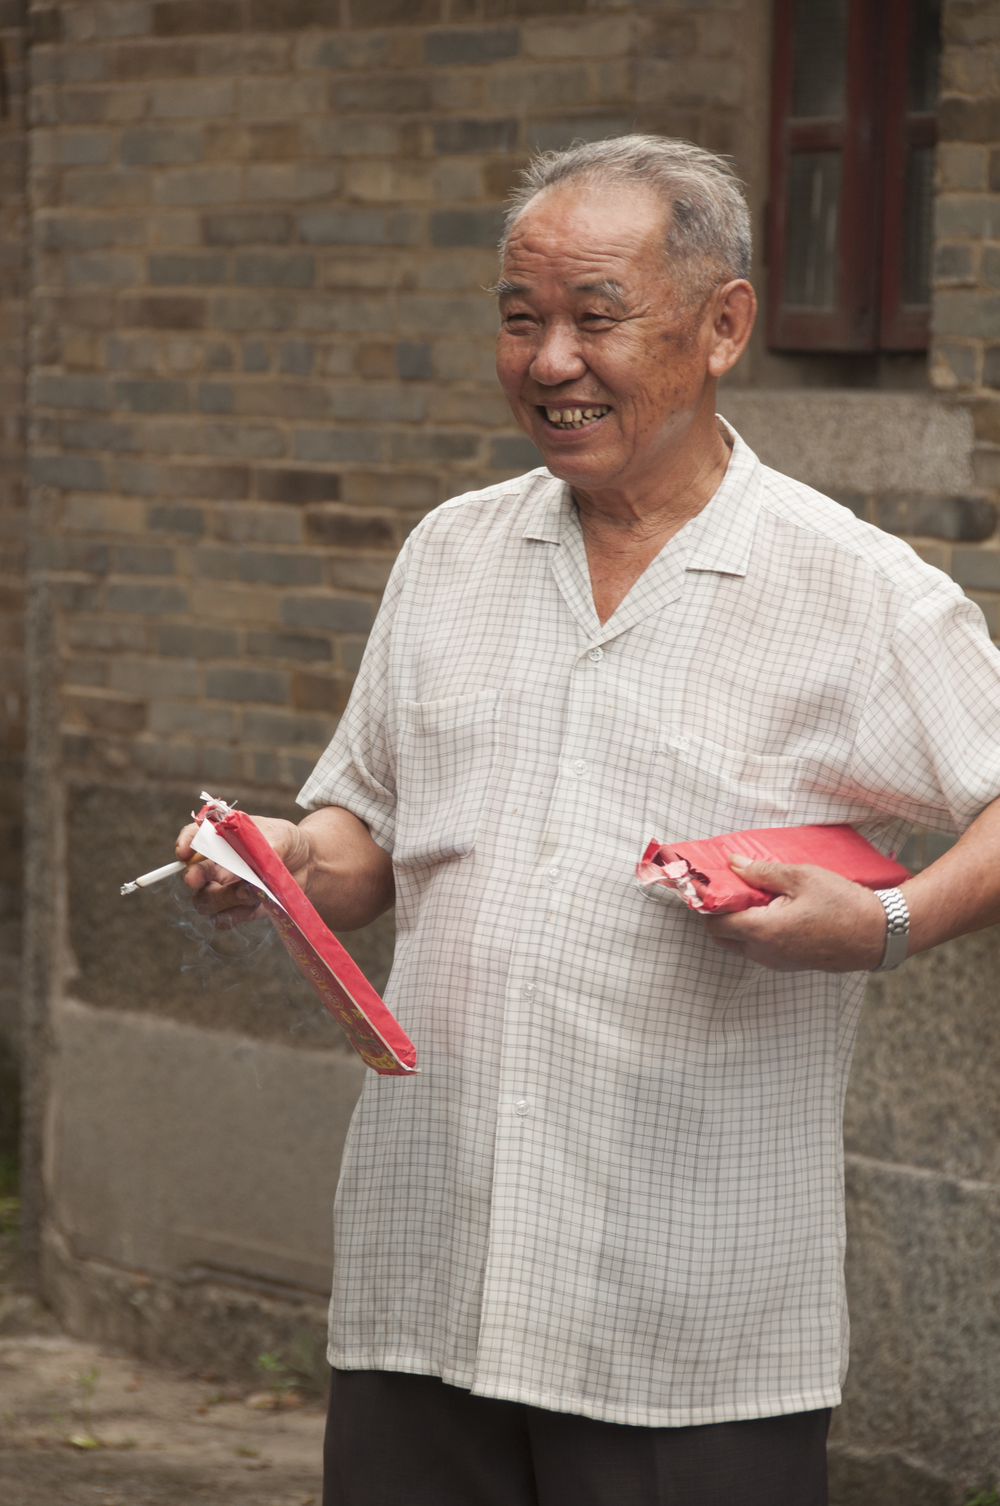 My great-uncle about to light firecrackers